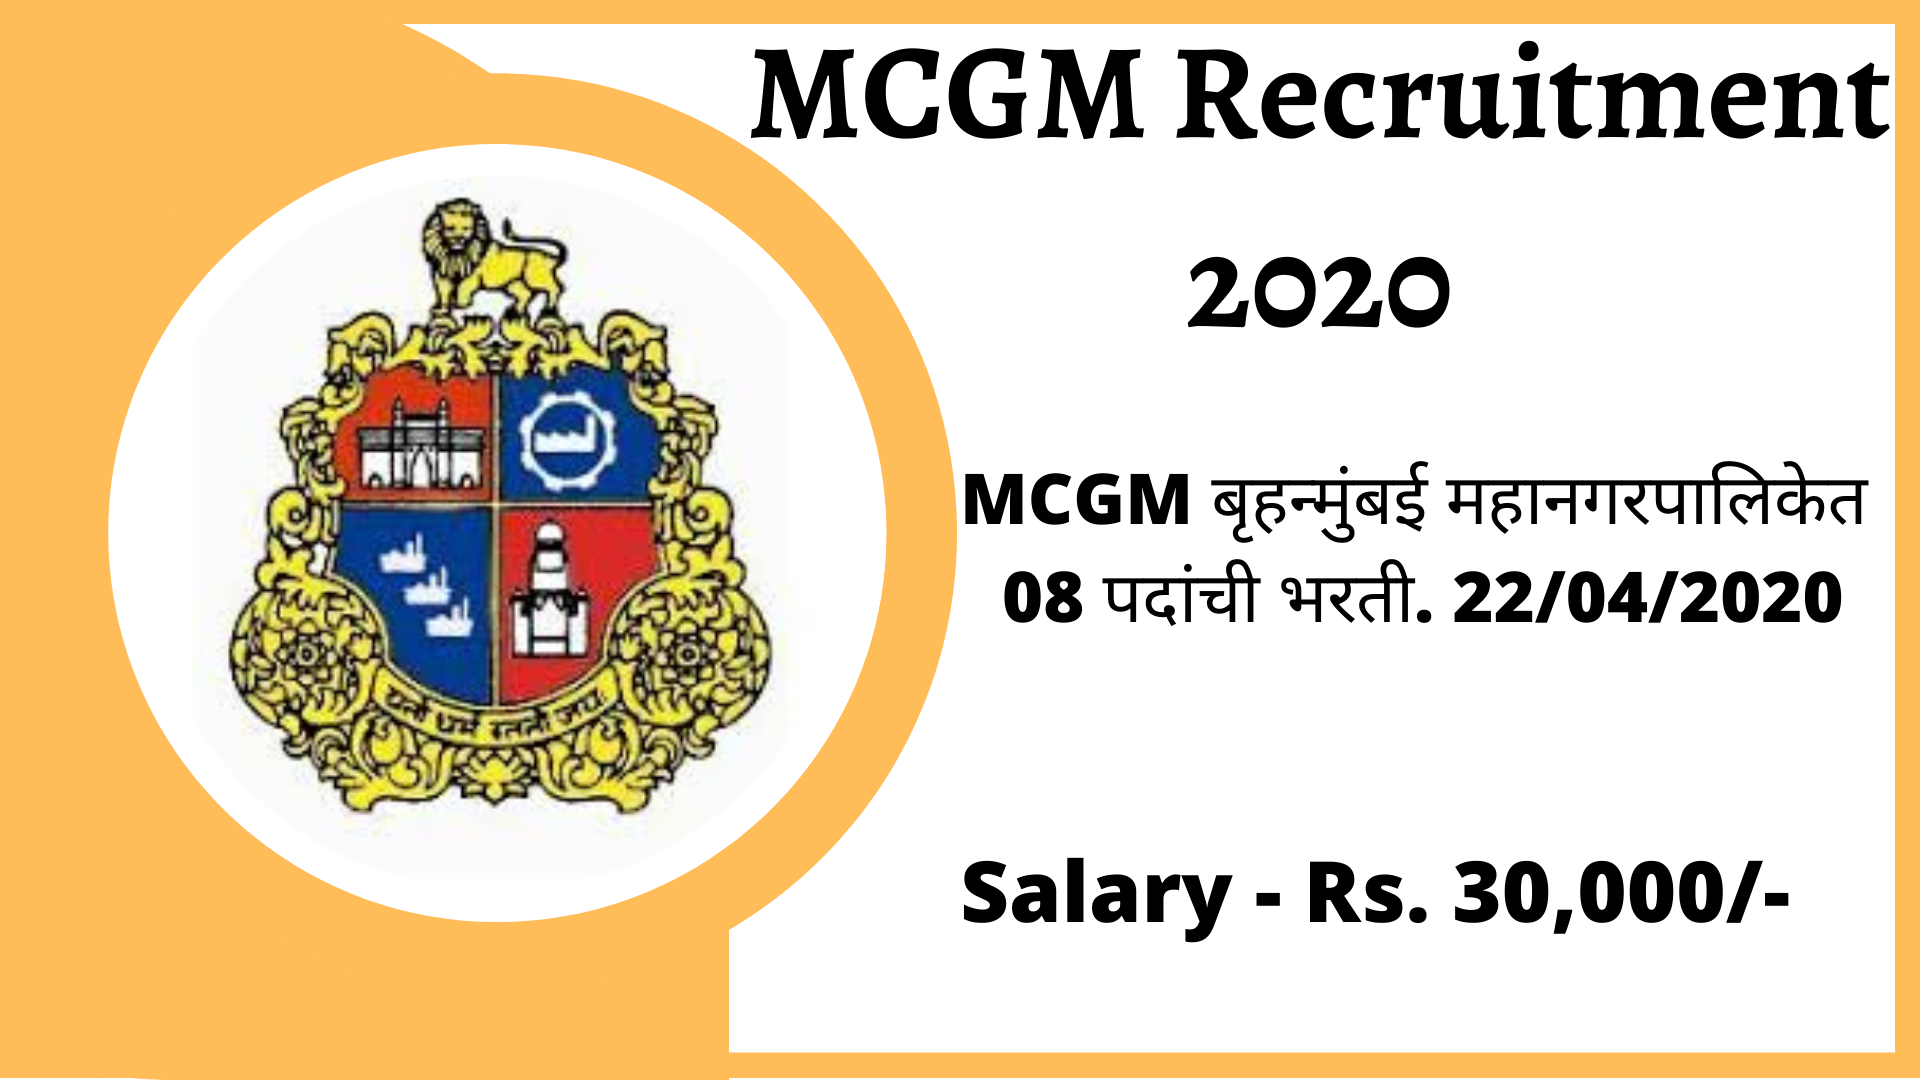 MCGM Recruitment 2020 | MCGM Bharti 2020